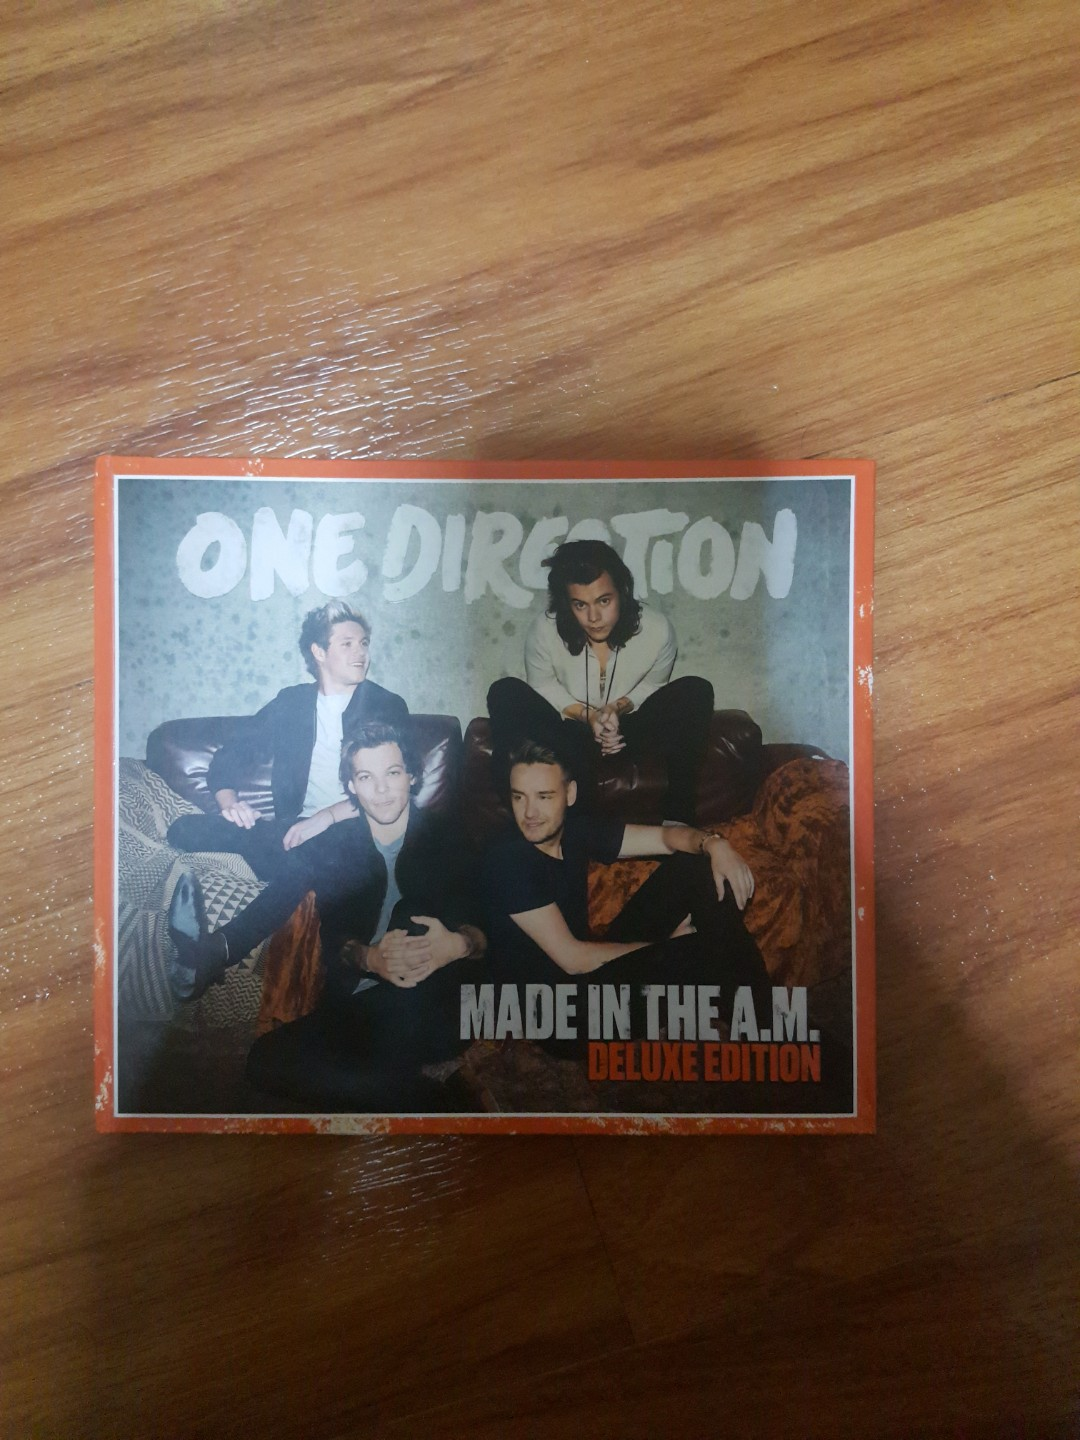 One Direction - Made in the A m Deluxe edition album